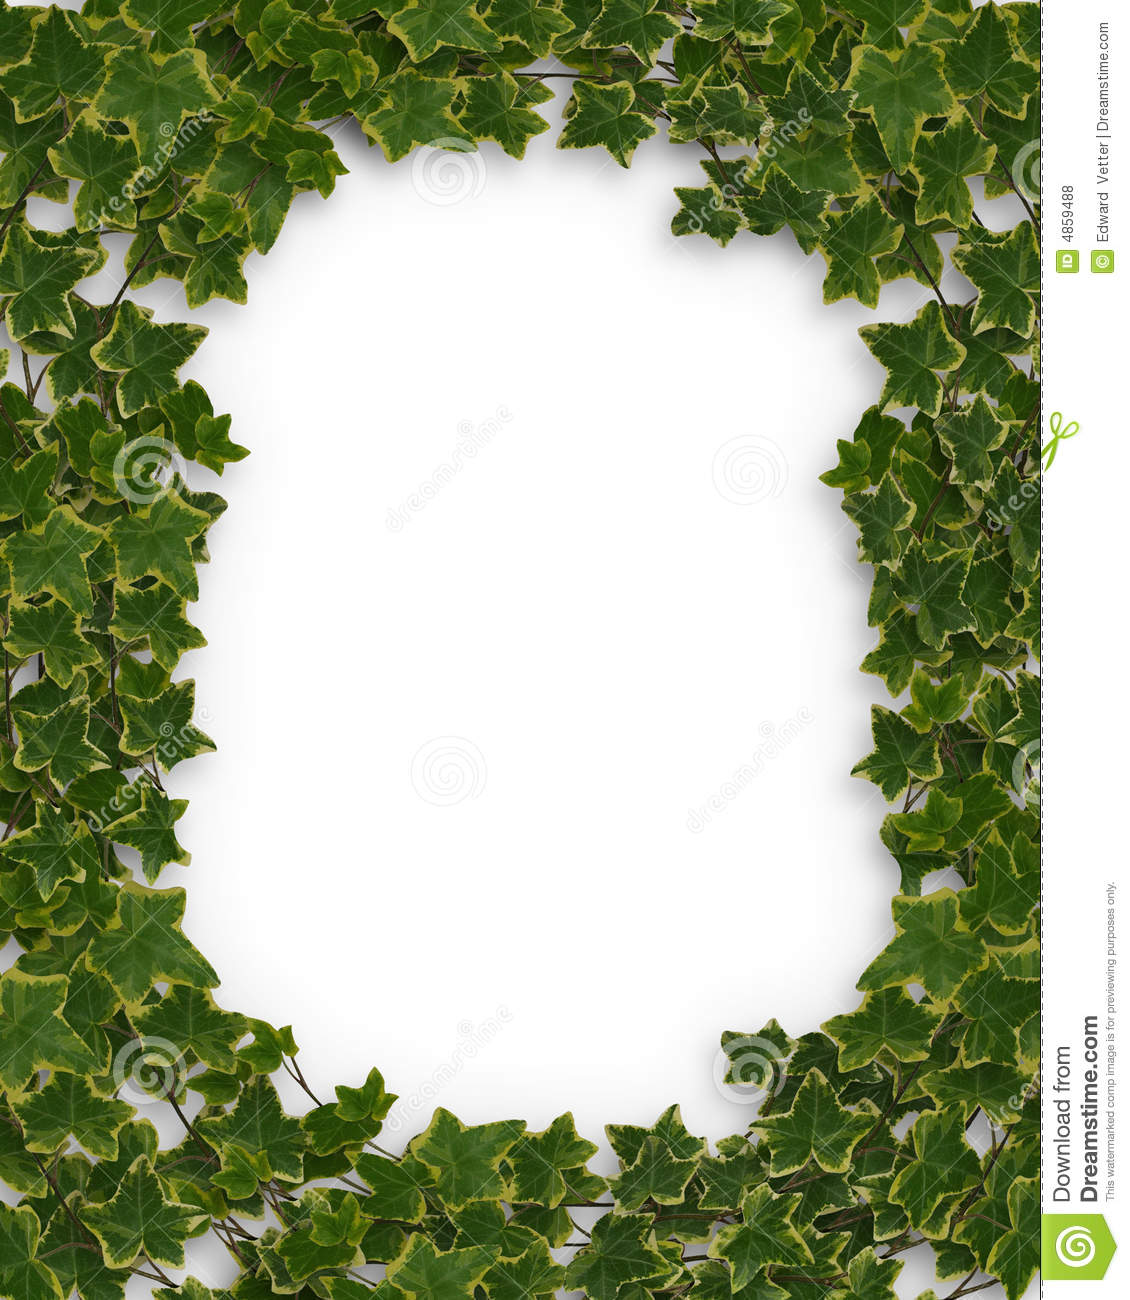 Ivy Border Or Frame 3D Royalty Free Stock Photos - Image: 4859488